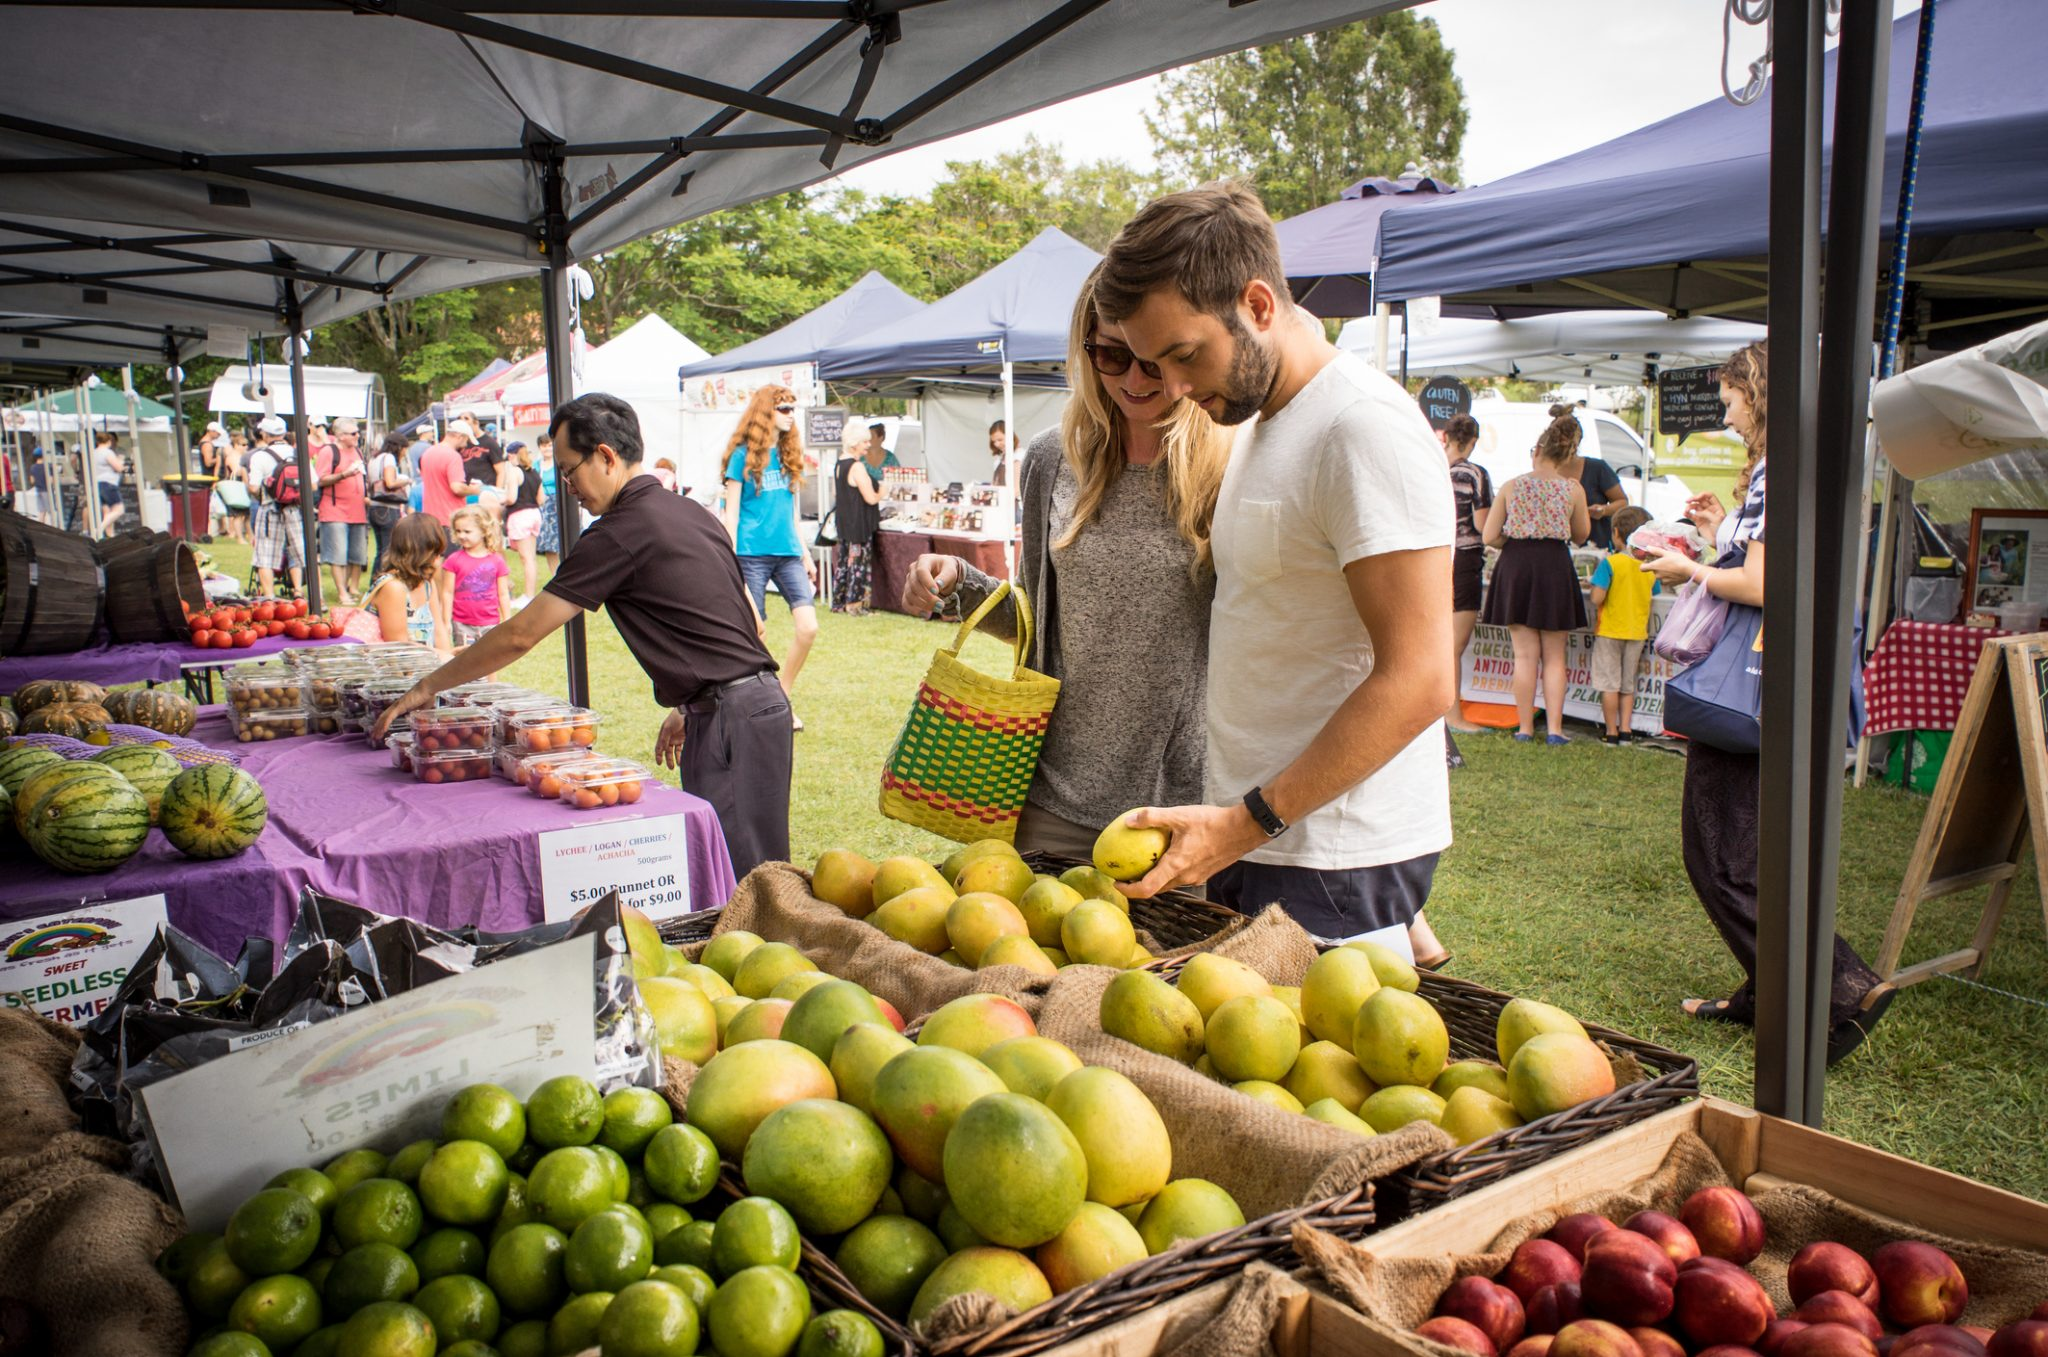 growers permits for farmers market